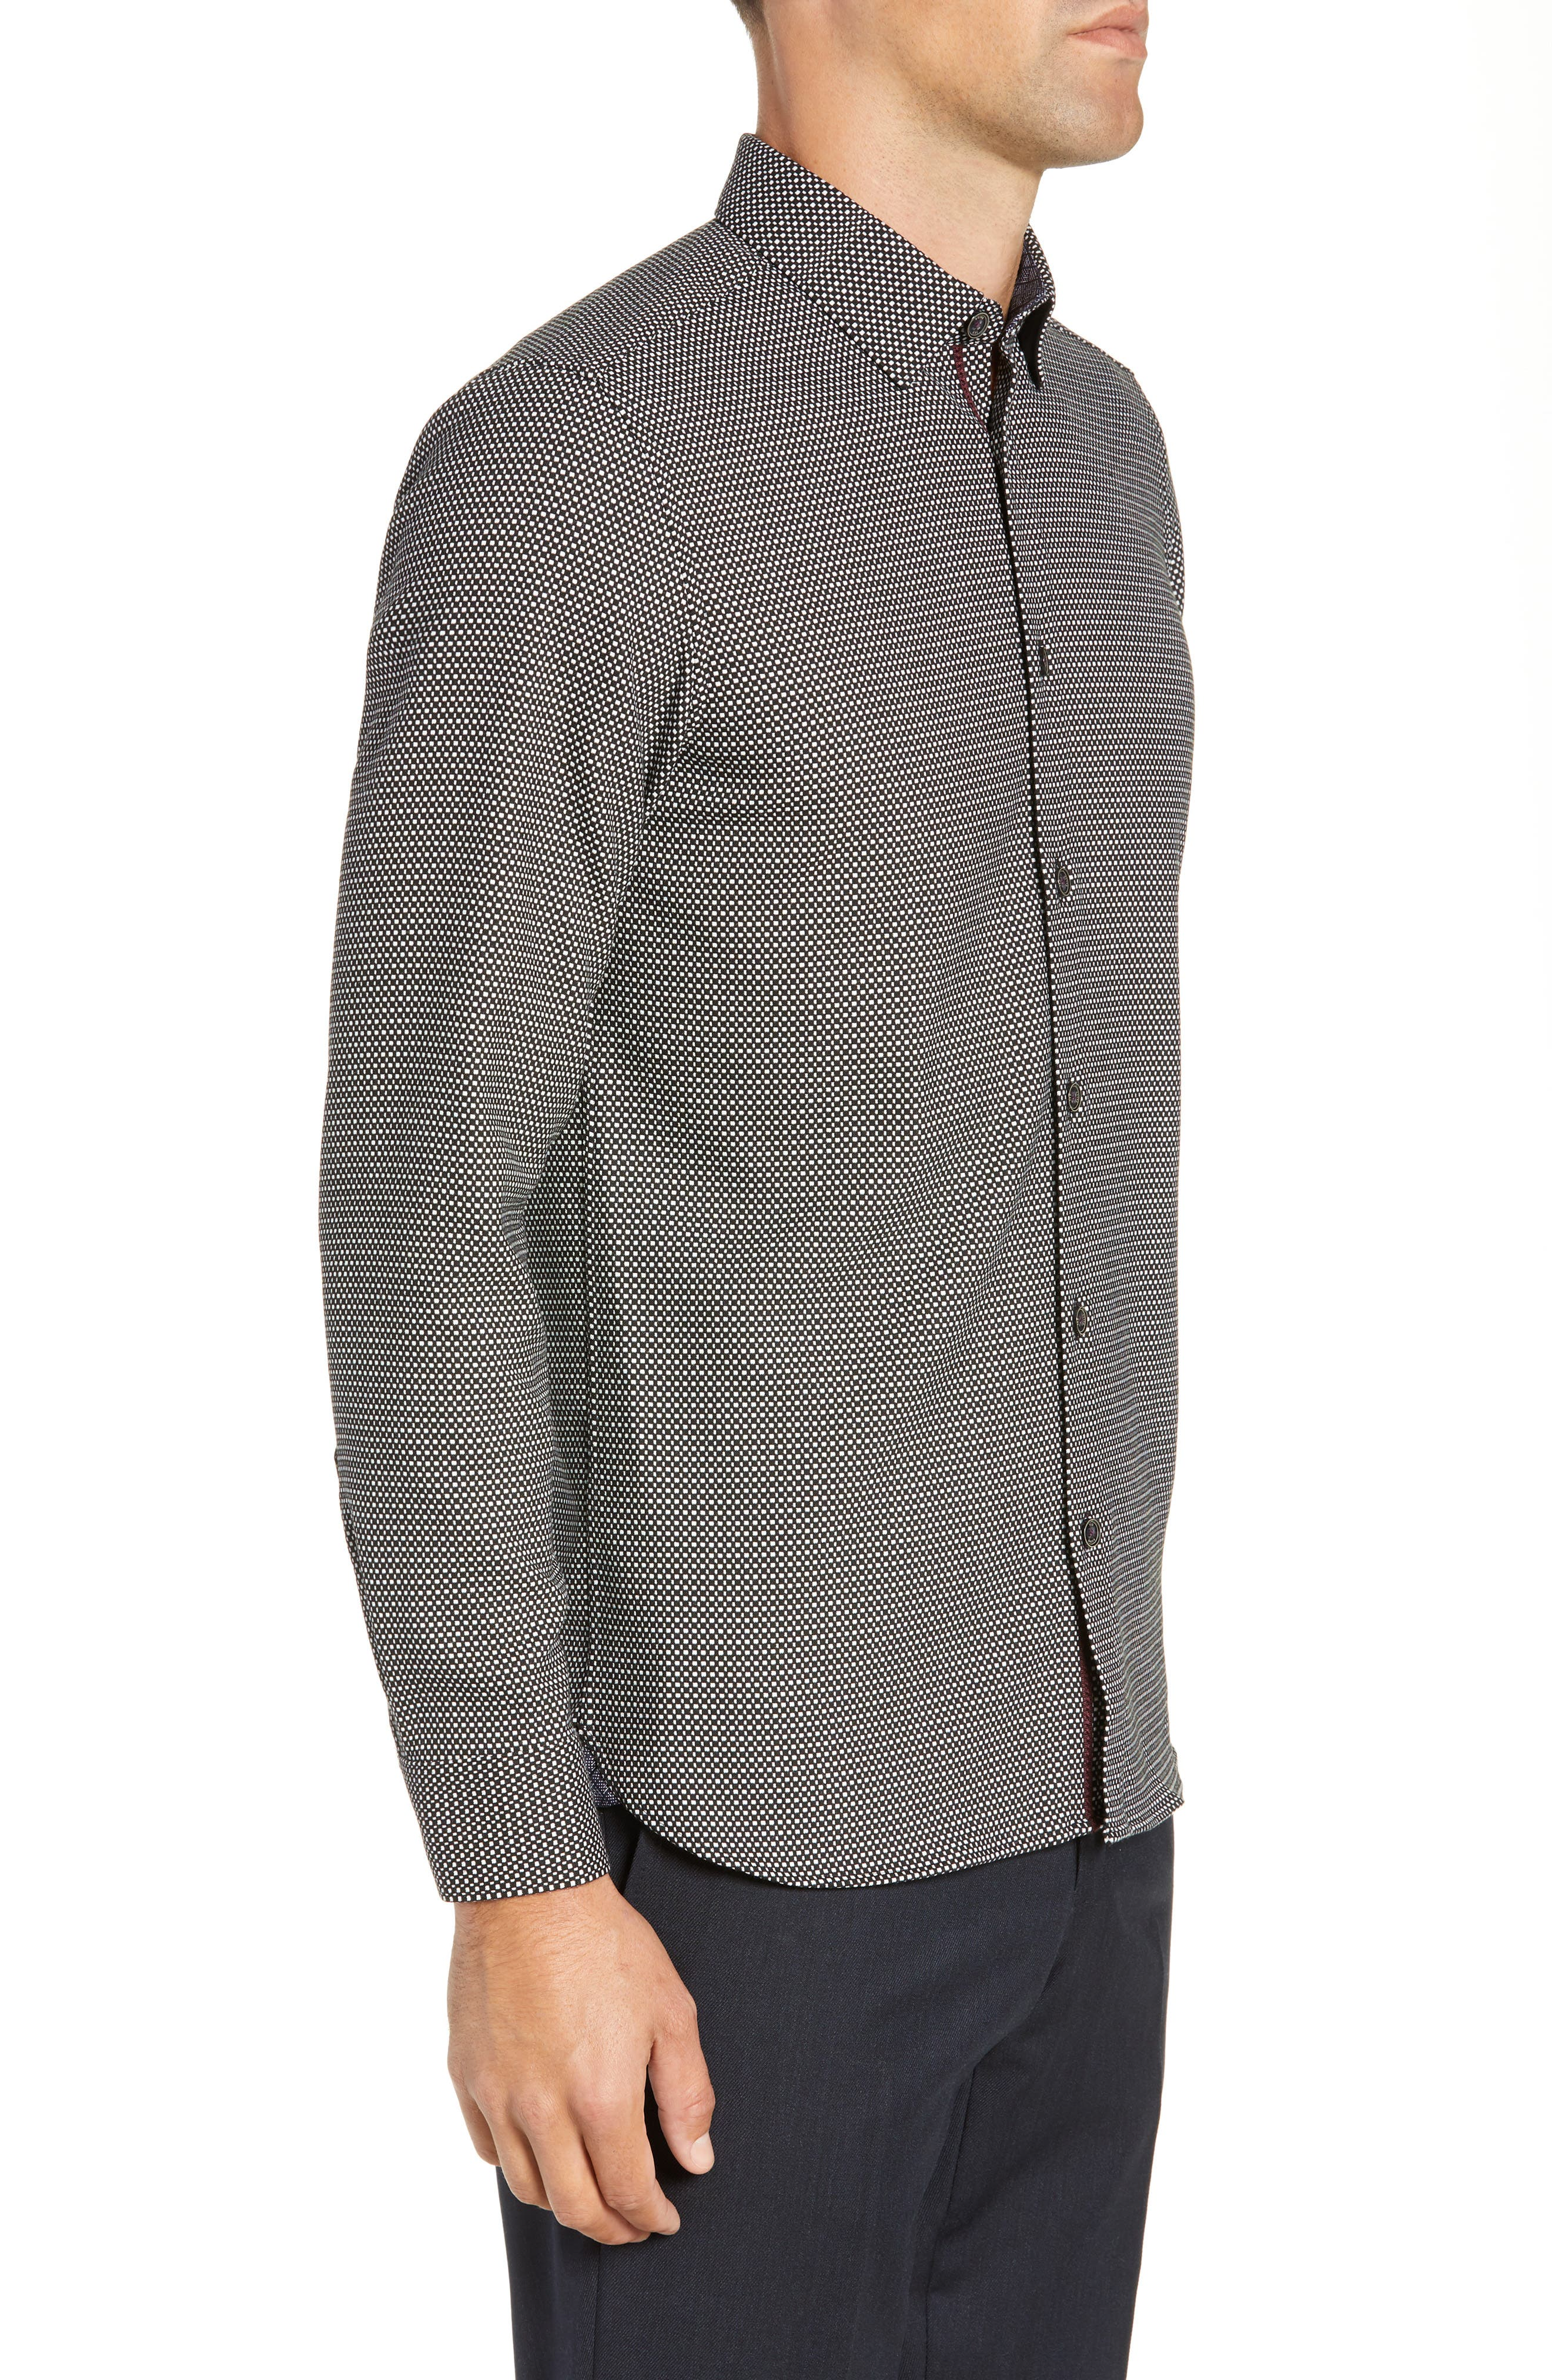 Wapping Slim Fit Textured Shirt,                             Alternate thumbnail 4, color,                             BLACK